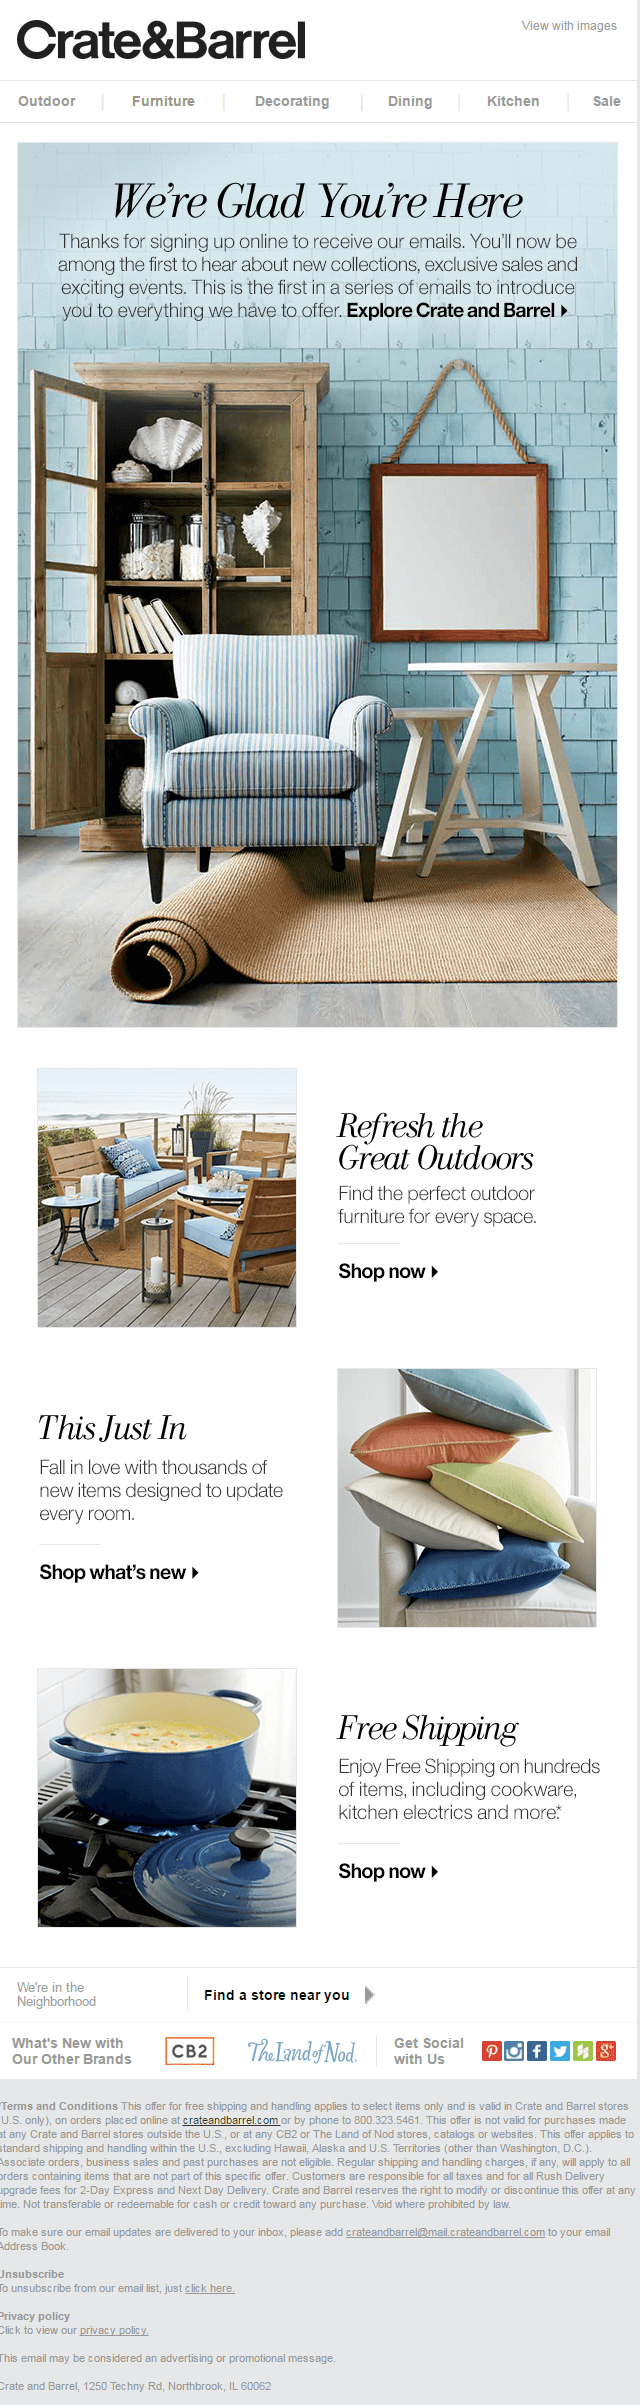 Welcome Email Sample Of Crate And Barrel.